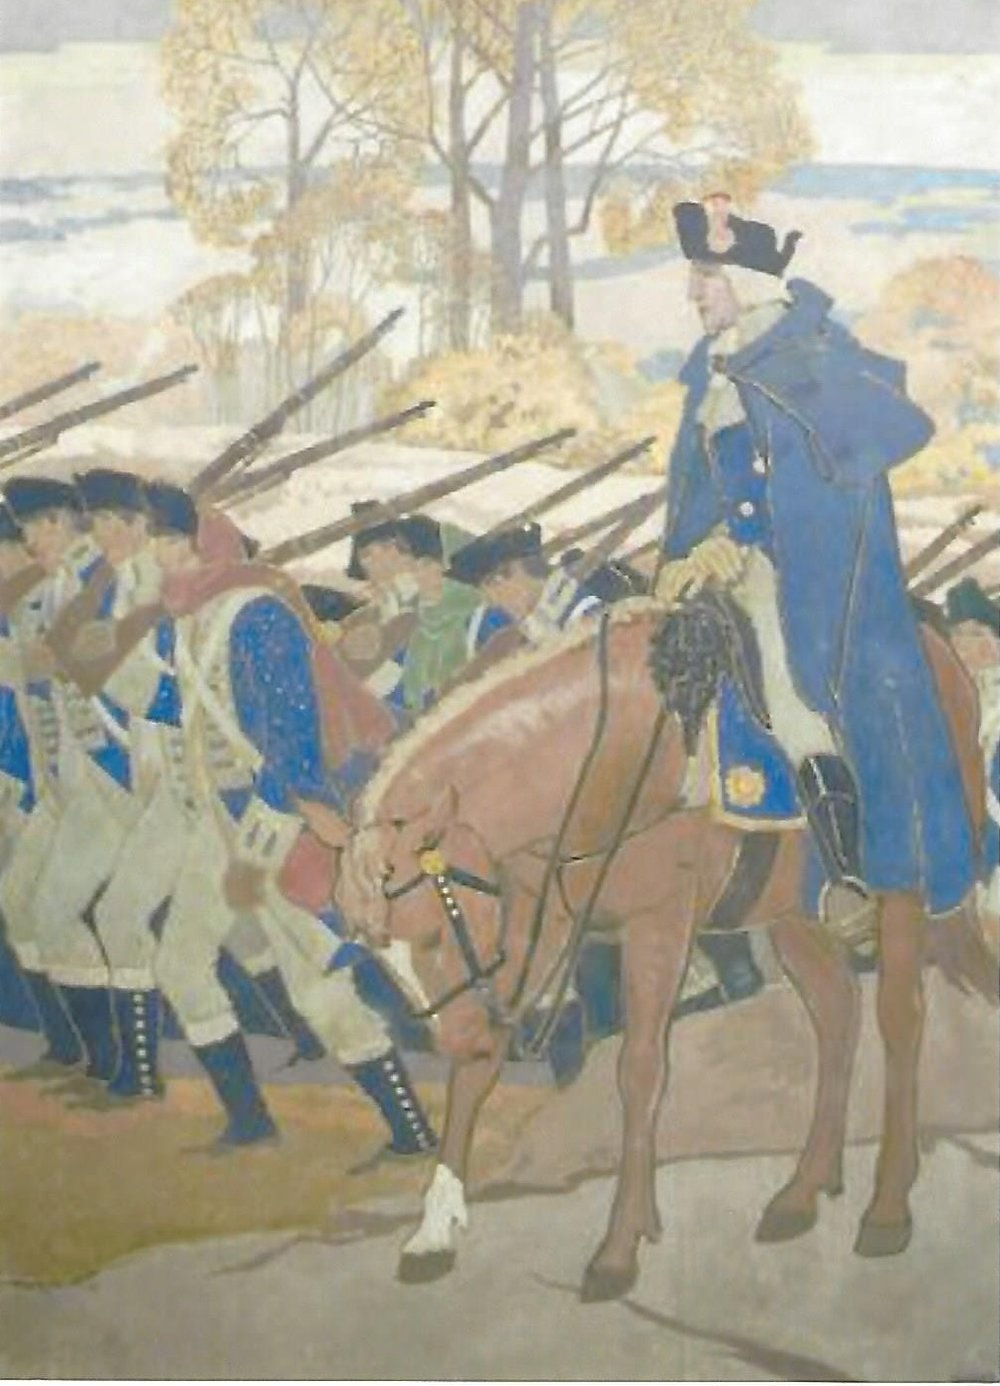 George Washington with his troops, mural - A second work marking that same day is a mural by artist Howard McCormick in the auditorium at the Anna C. Scott Elementary School. McCormick painted it as part of a WPA project in 1936.George Washington with his troops, mural painted by Howard McCormick 1936 (Anna C. Scott Elementary School)